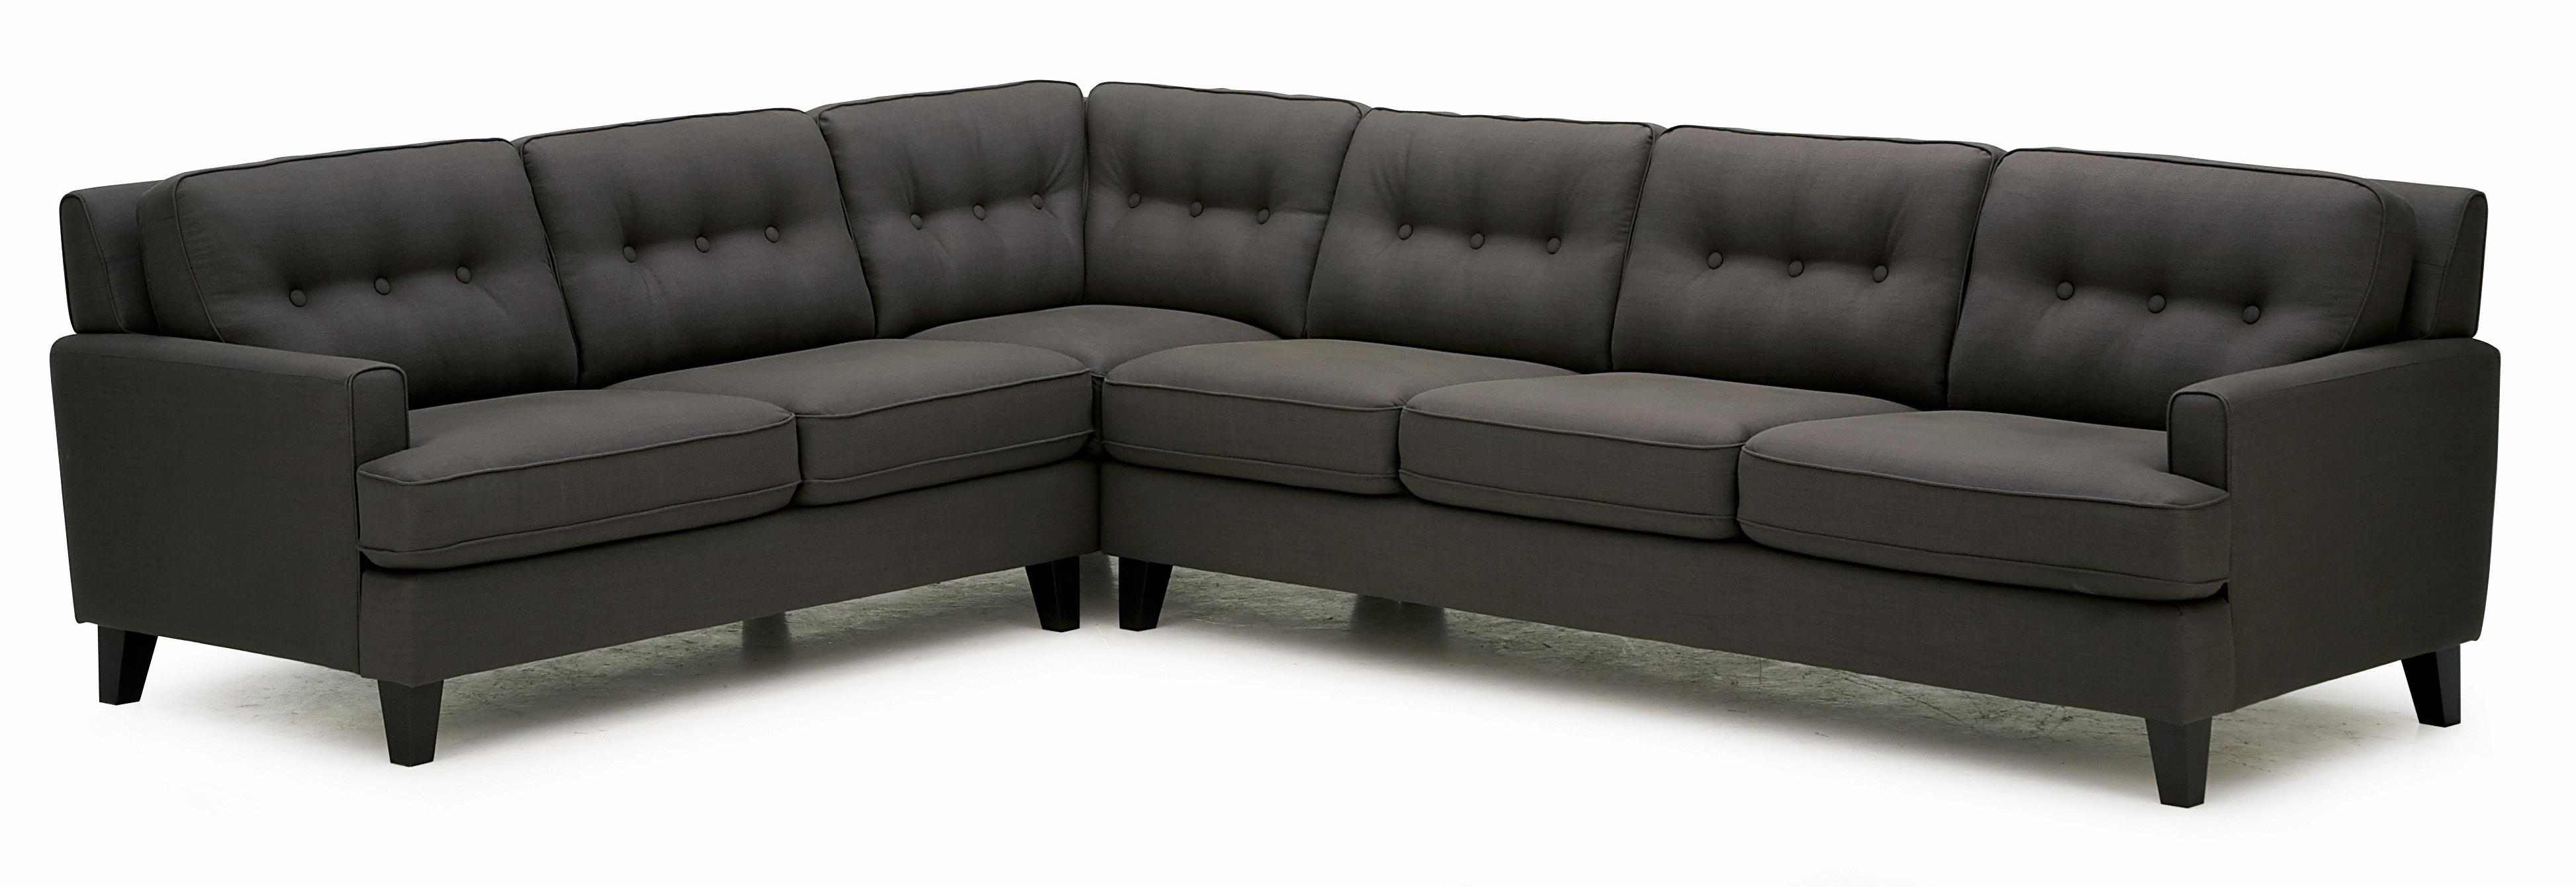 Two Piece Sectional Sofa with RHF Sofa Split